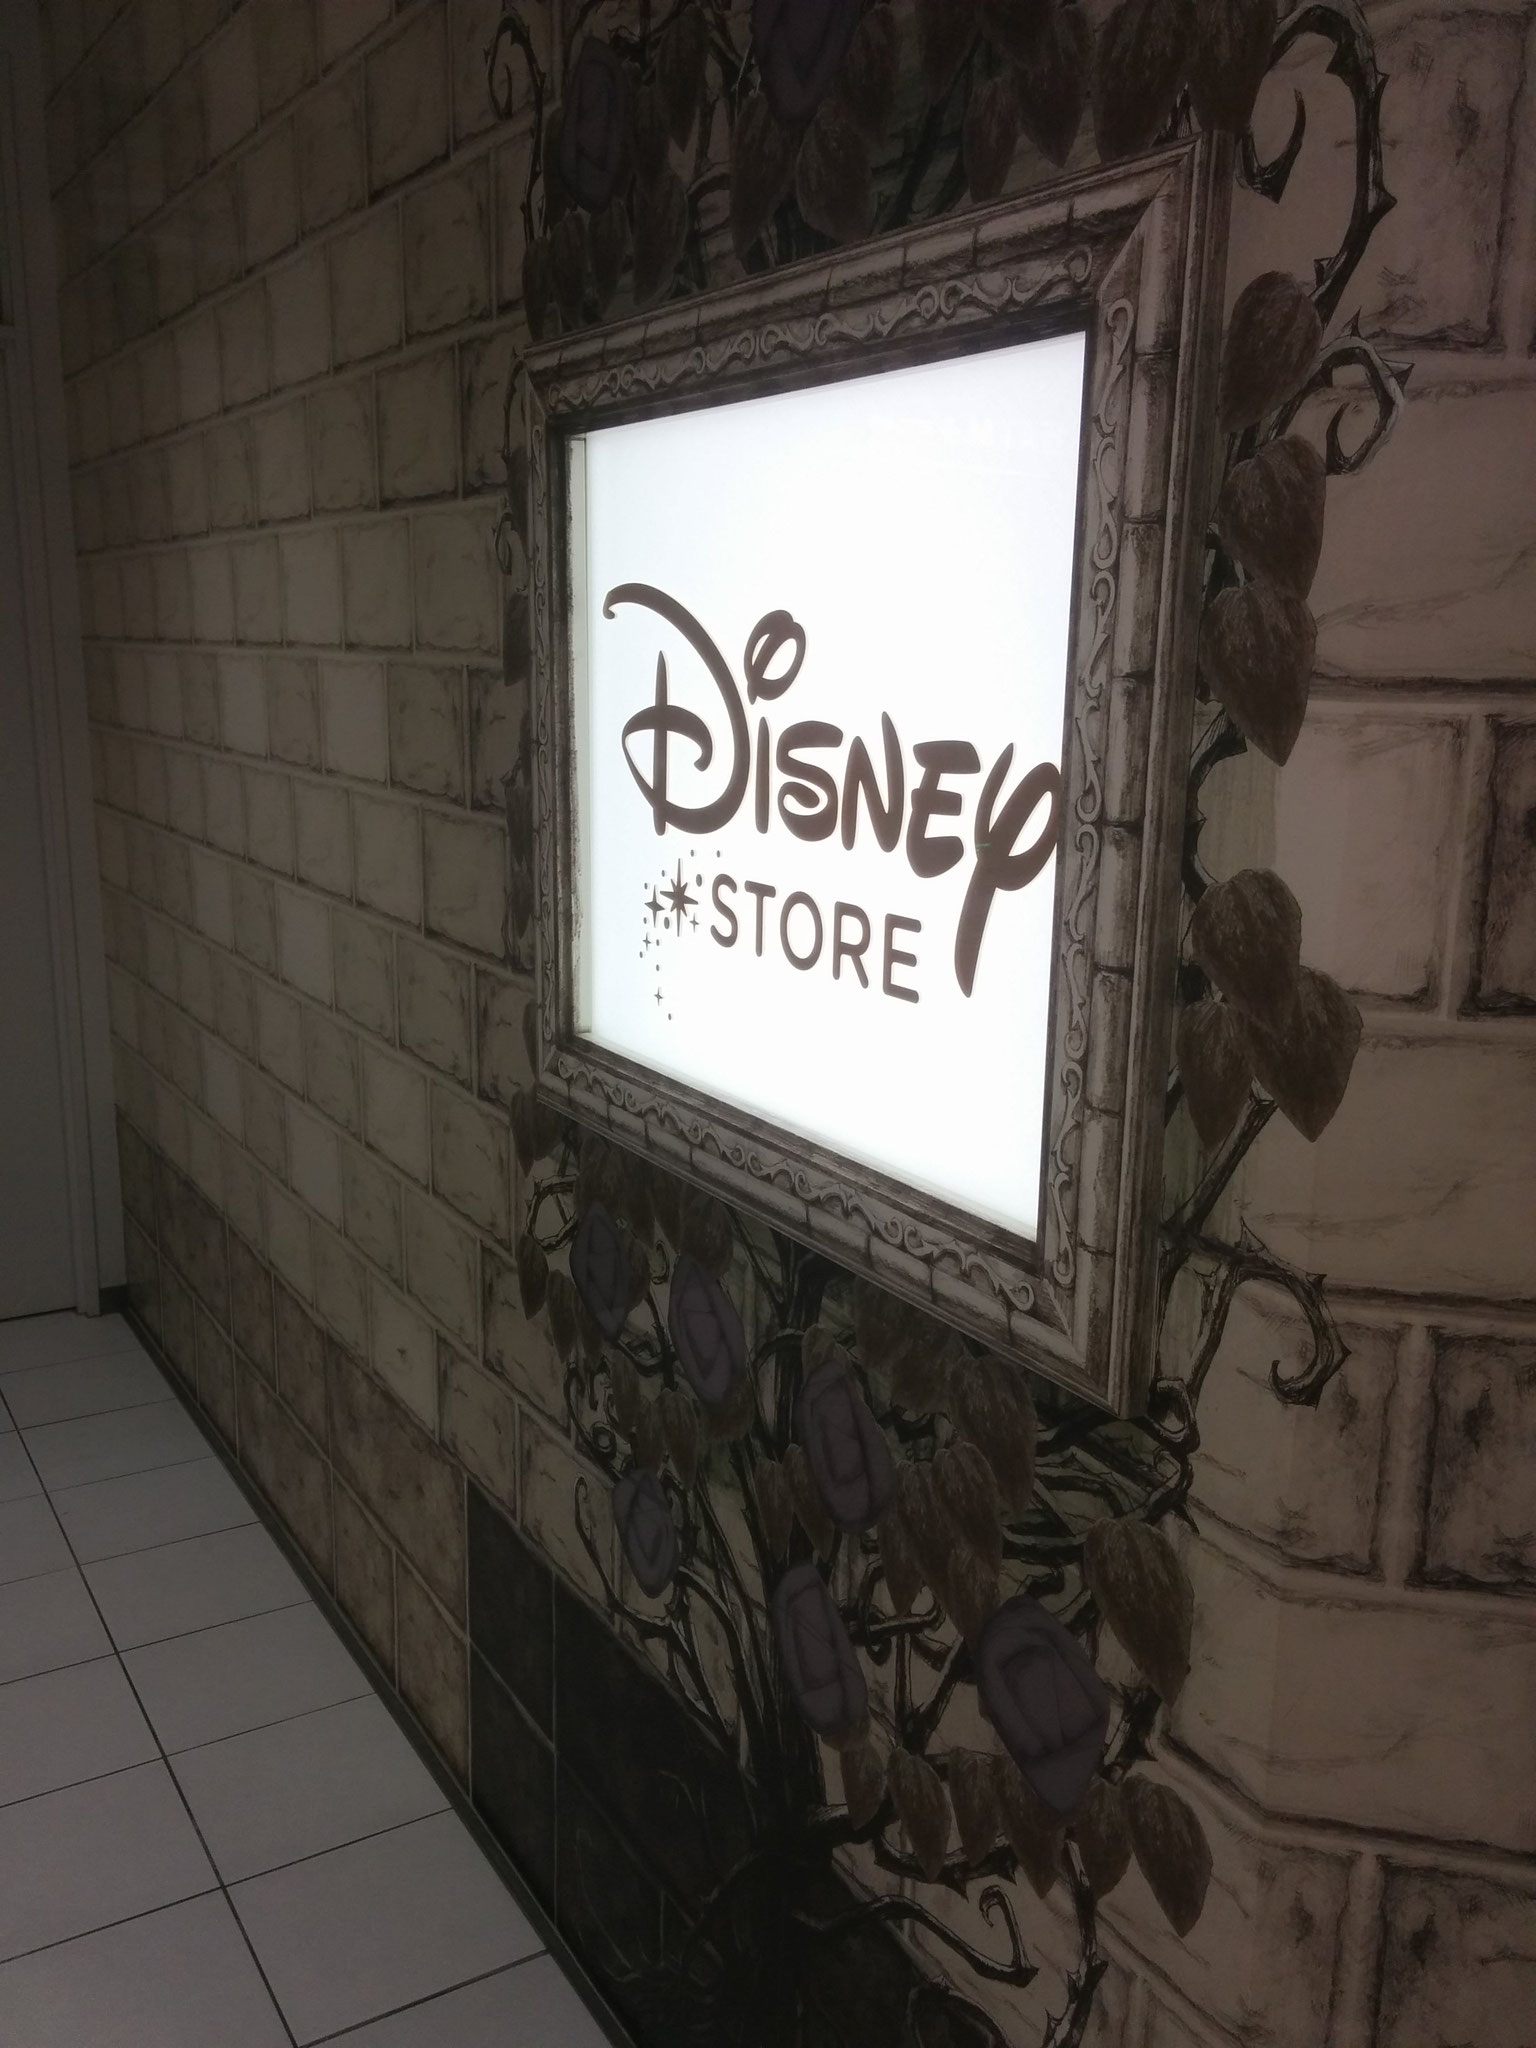 Yeah, they have Disney stores with pricey Disney merch, mostly kids were there